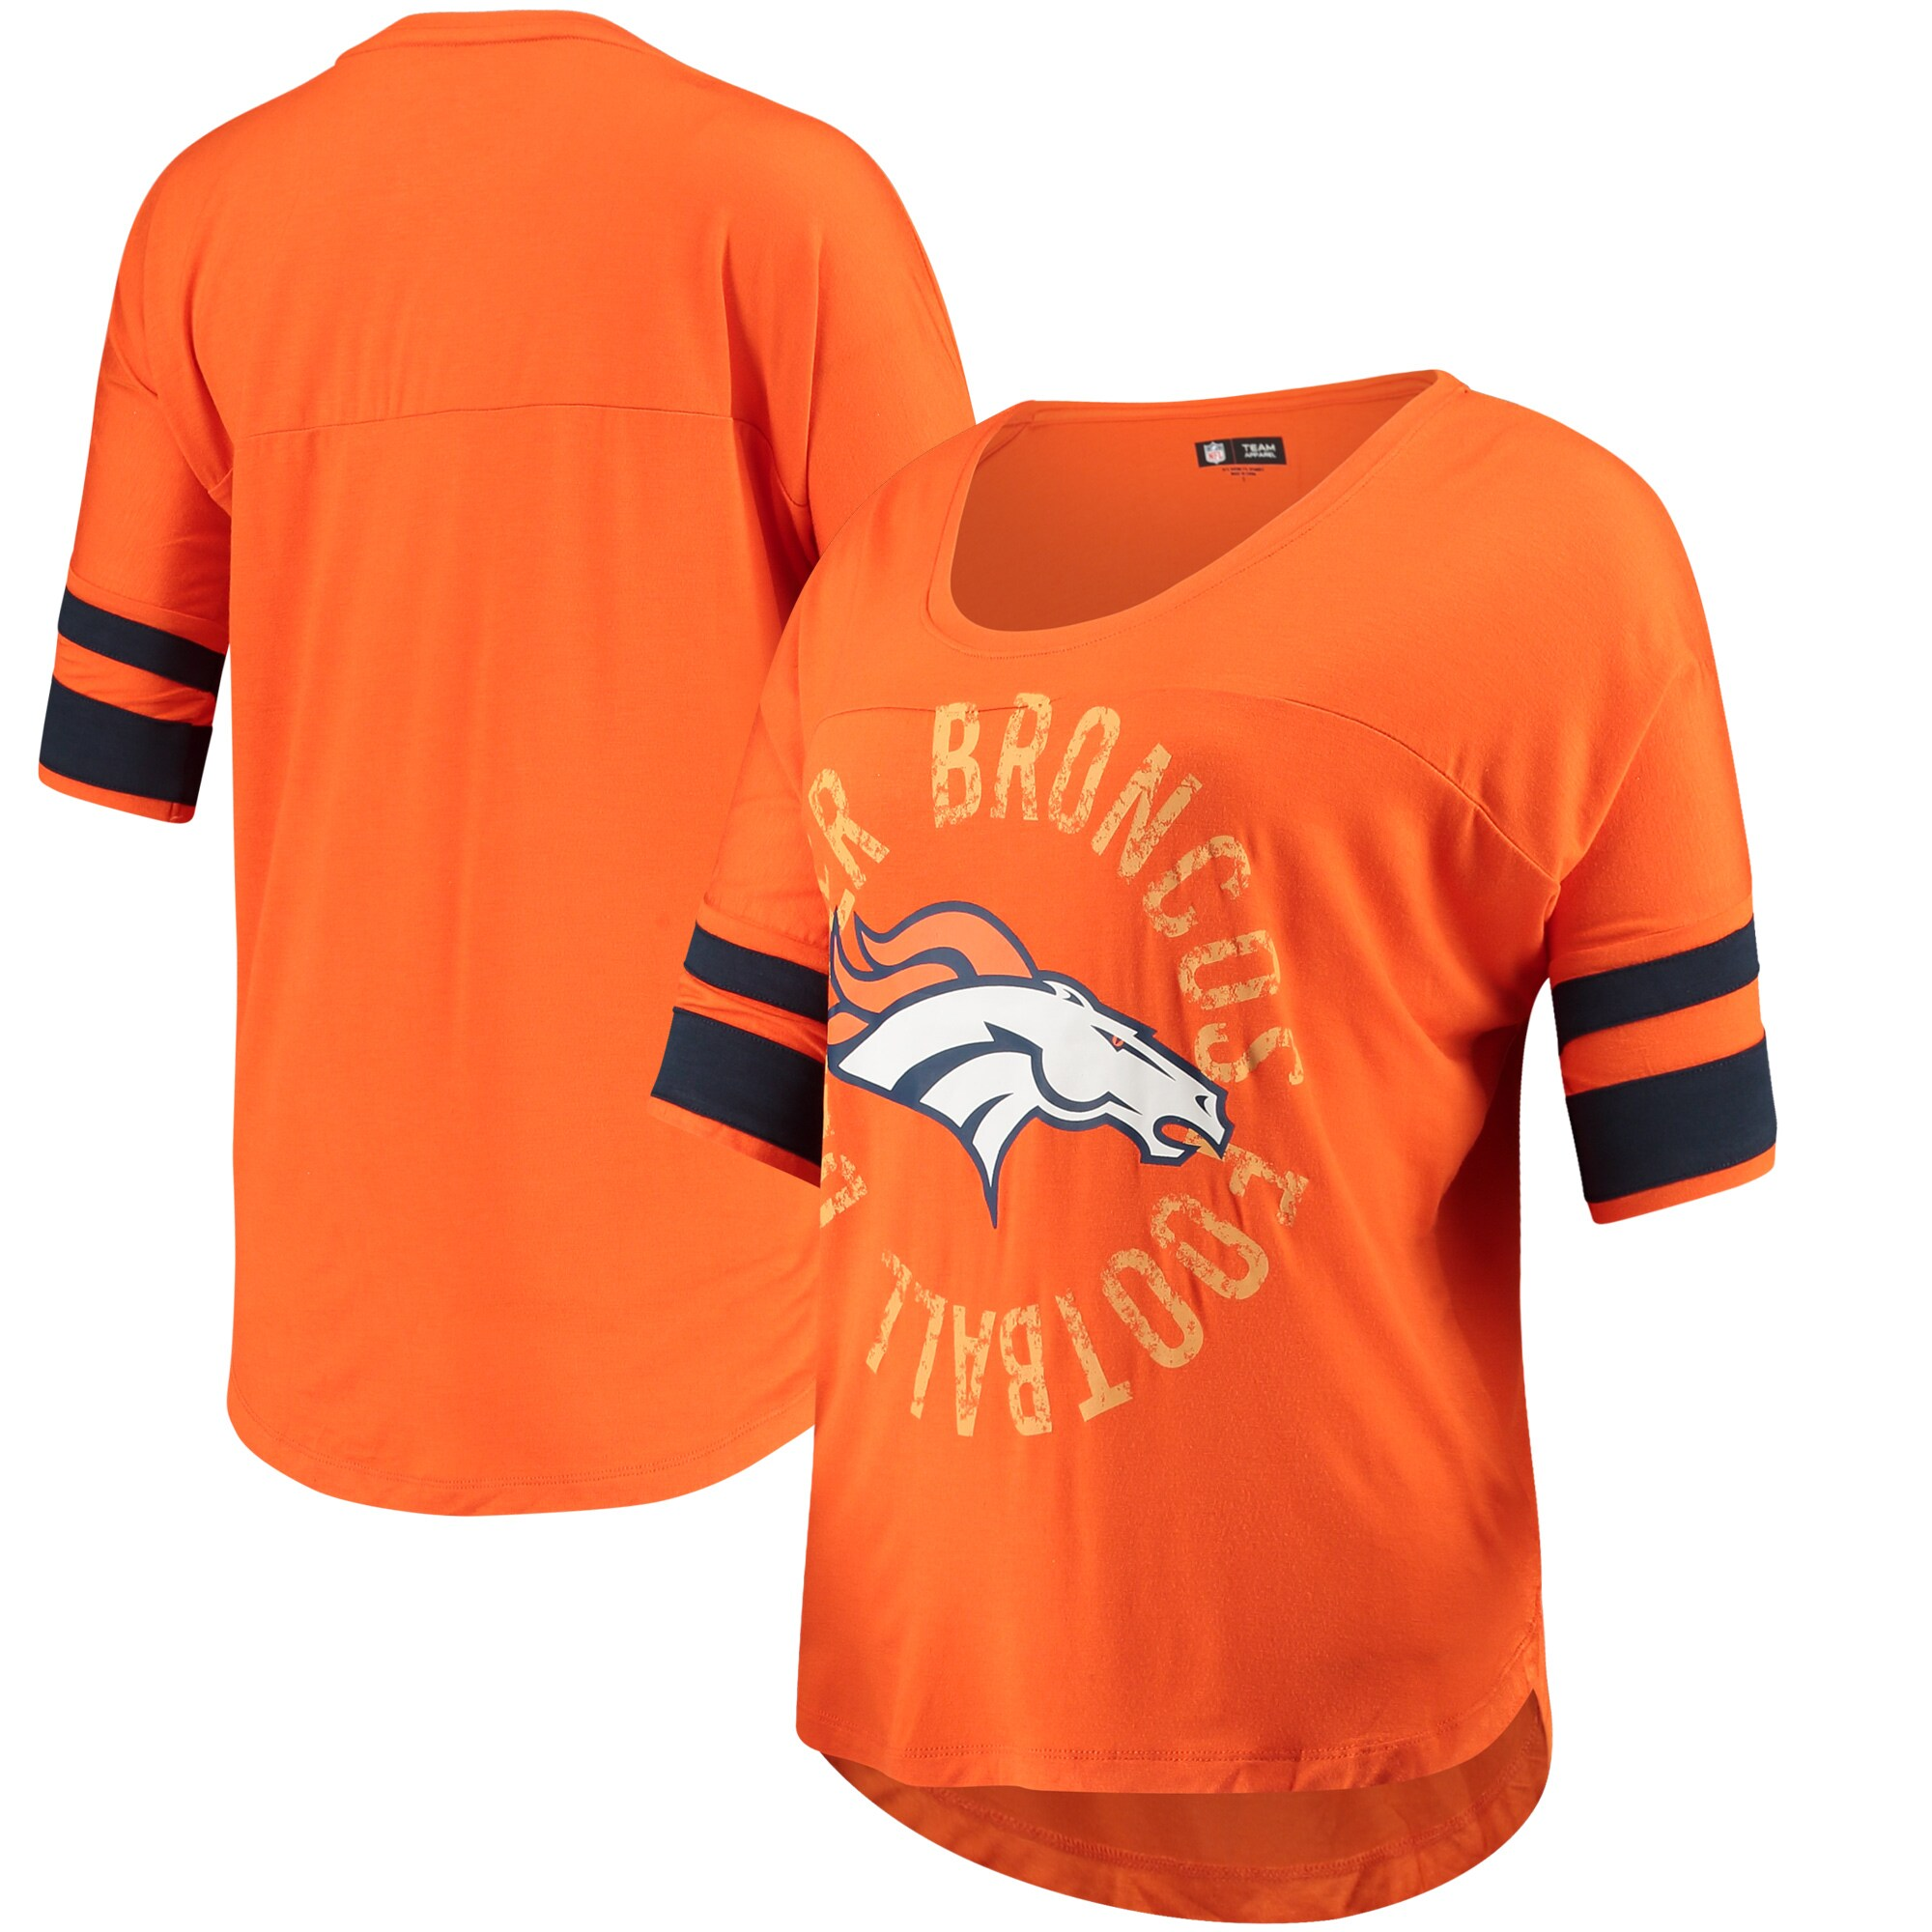 Denver Broncos 5th & Ocean by New Era Women's Novelty Dolman Sleeve Scoop Neck T-Shirt - Orange